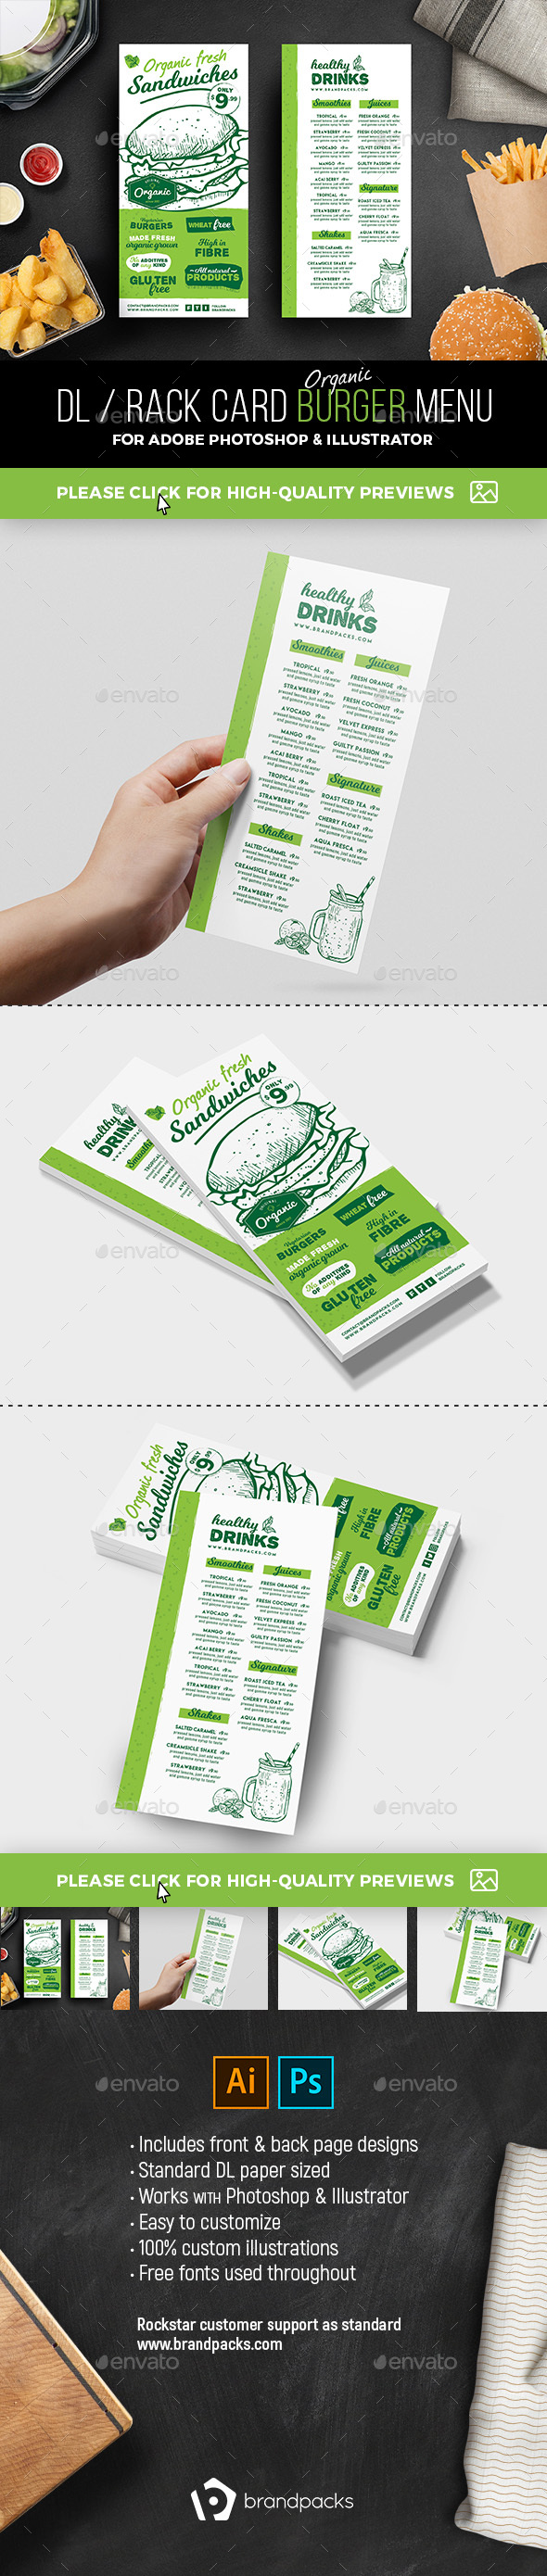 GraphicRiver DL Rack Card Burger Menu 21080493